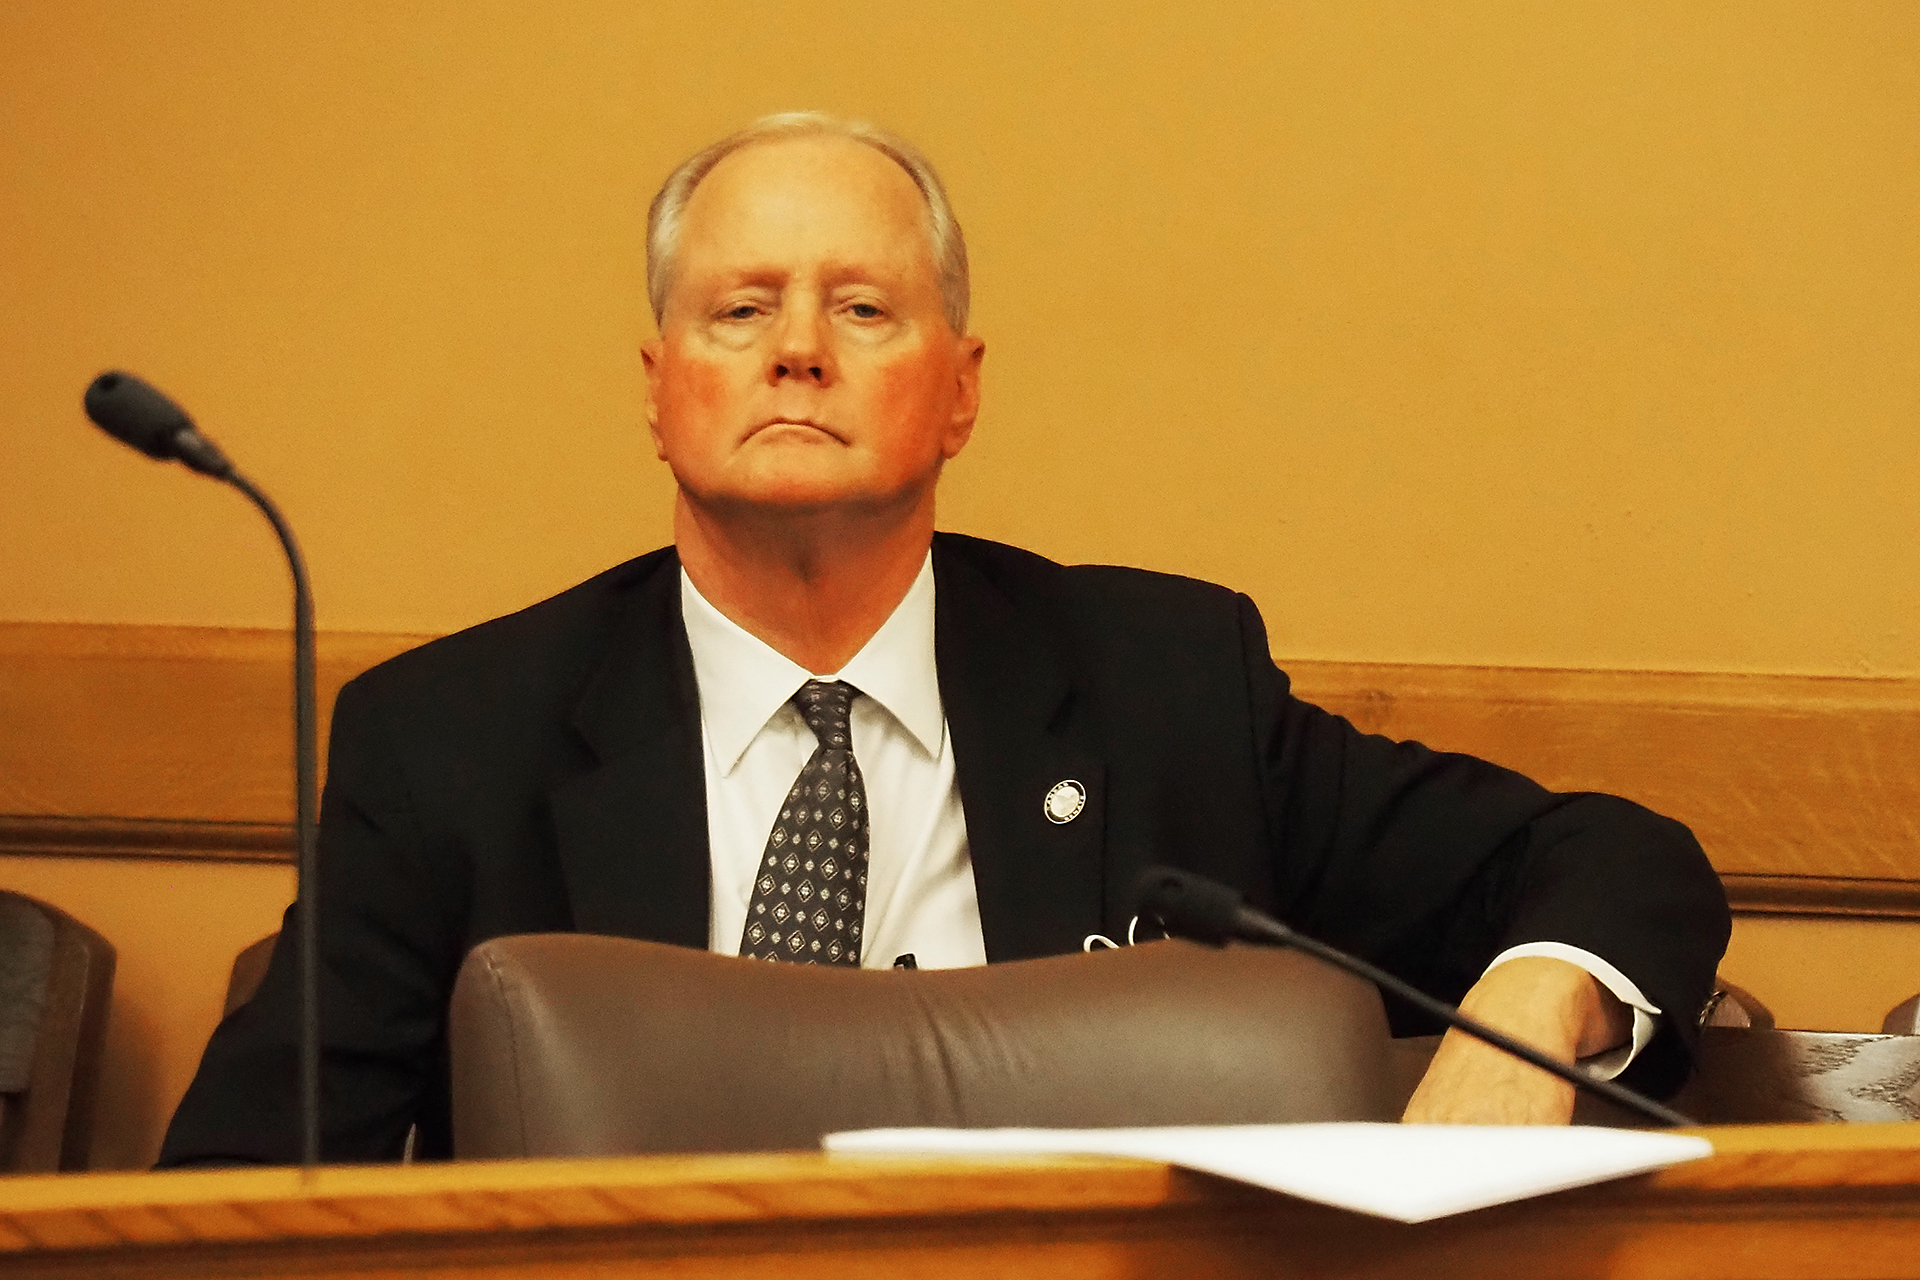 Court record shows Kansas Senate majority leader drove 90 mph in wrong direction while drunk